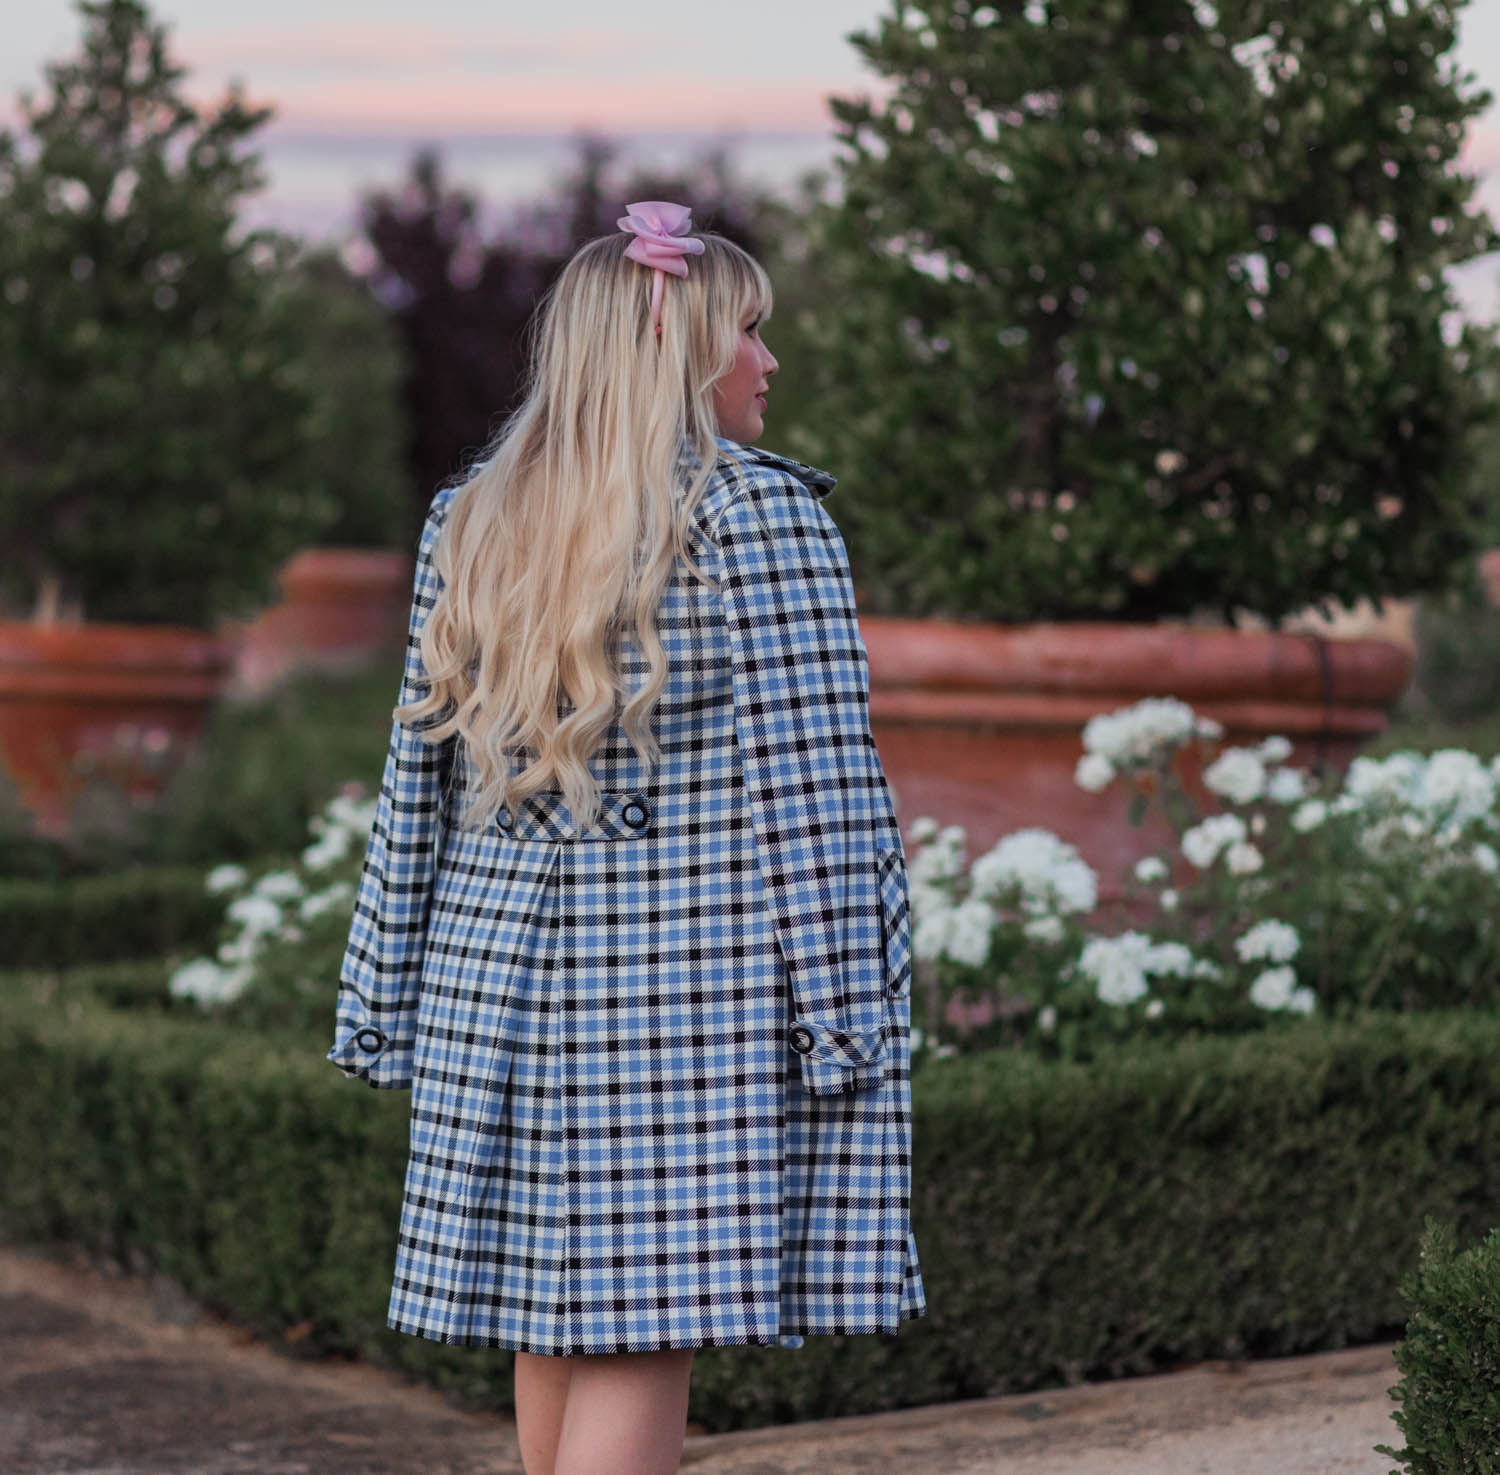 Elizabeth Hugen of Lizzie in Lace shares tips on how to Make Plaid Look More Feminine.